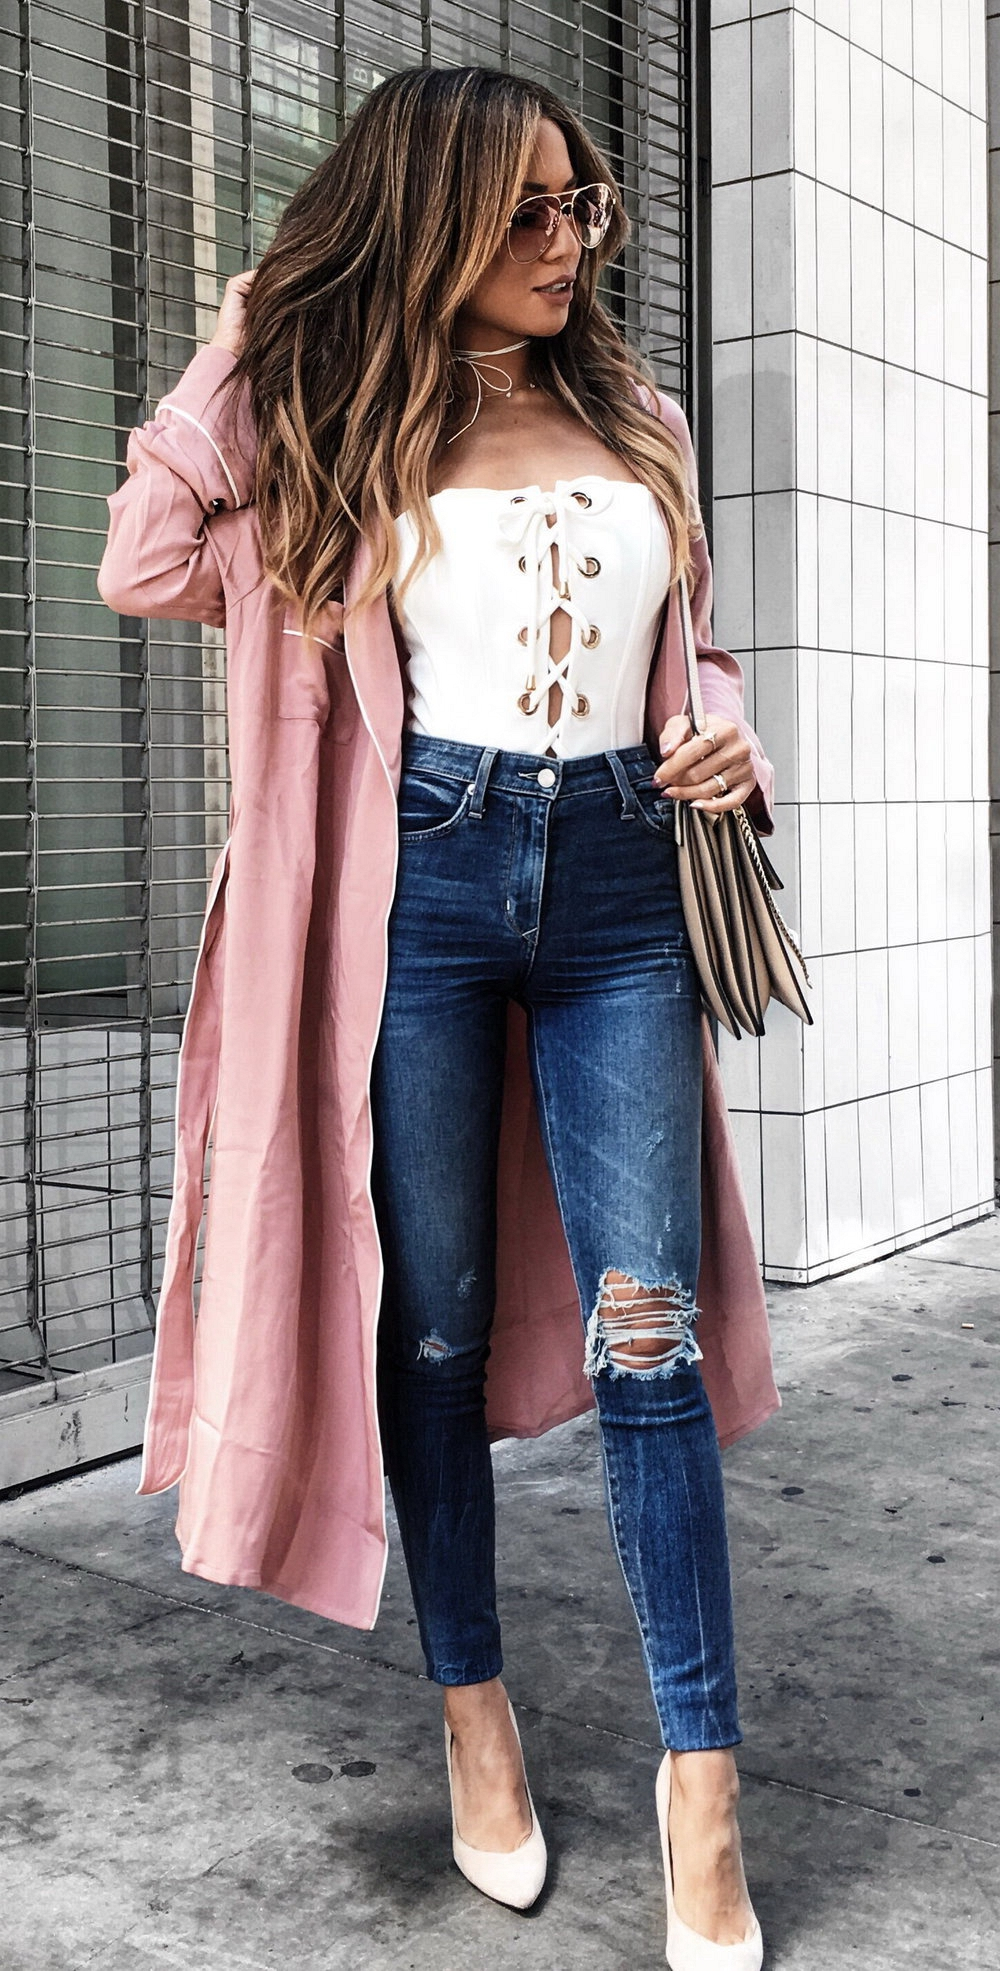 35 Stylish Outfit Ideas for Women 2020 – Outfits for ...